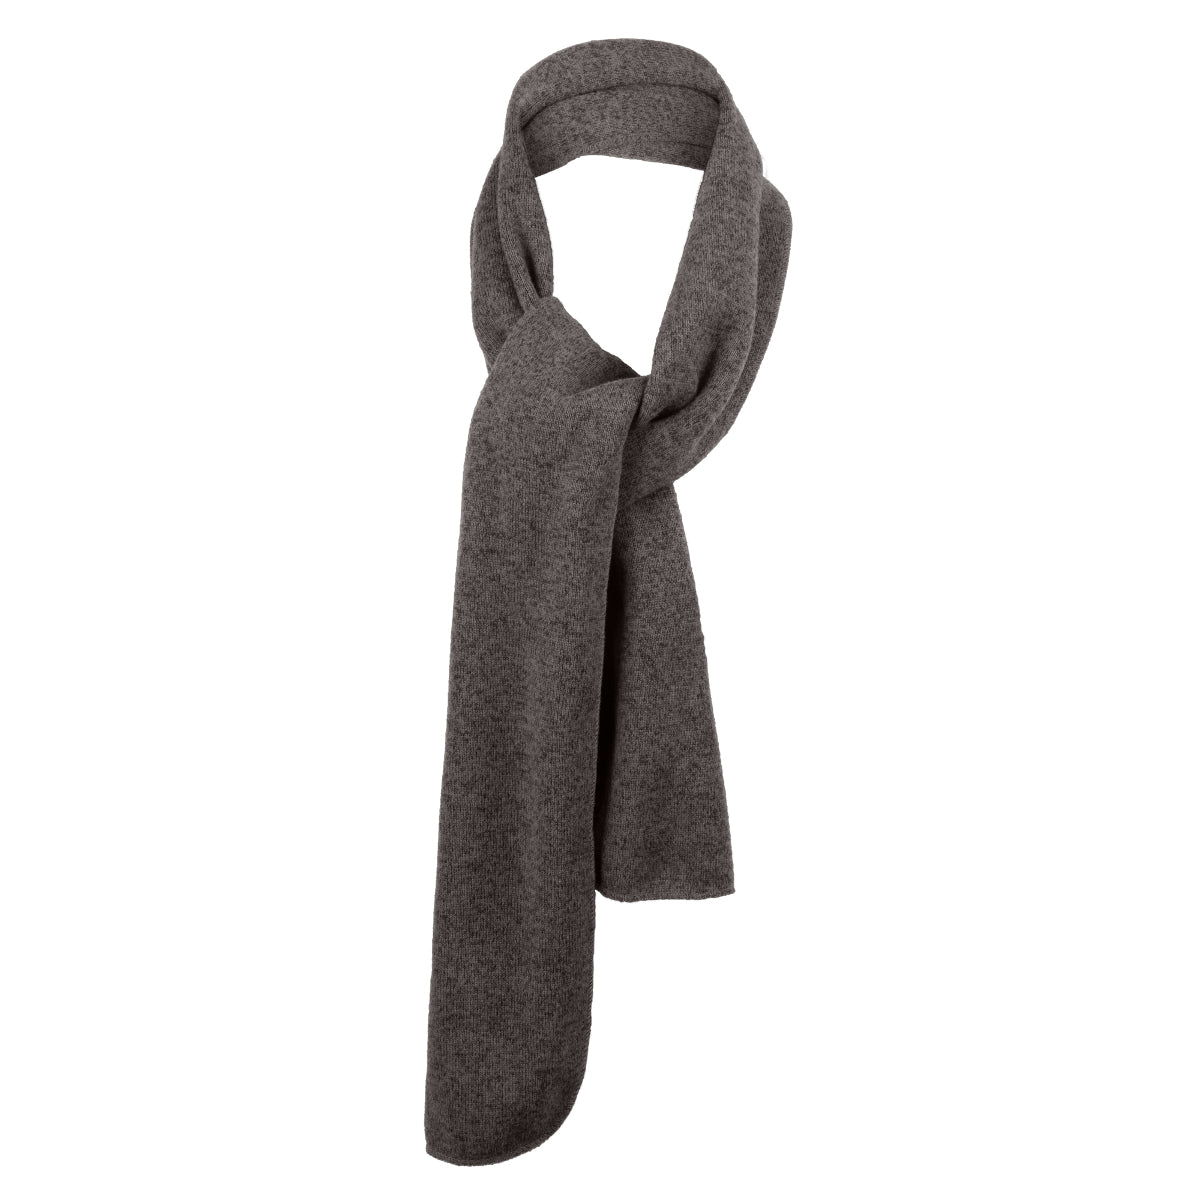 Heathered Knit Scarf Grey Heather/ Black